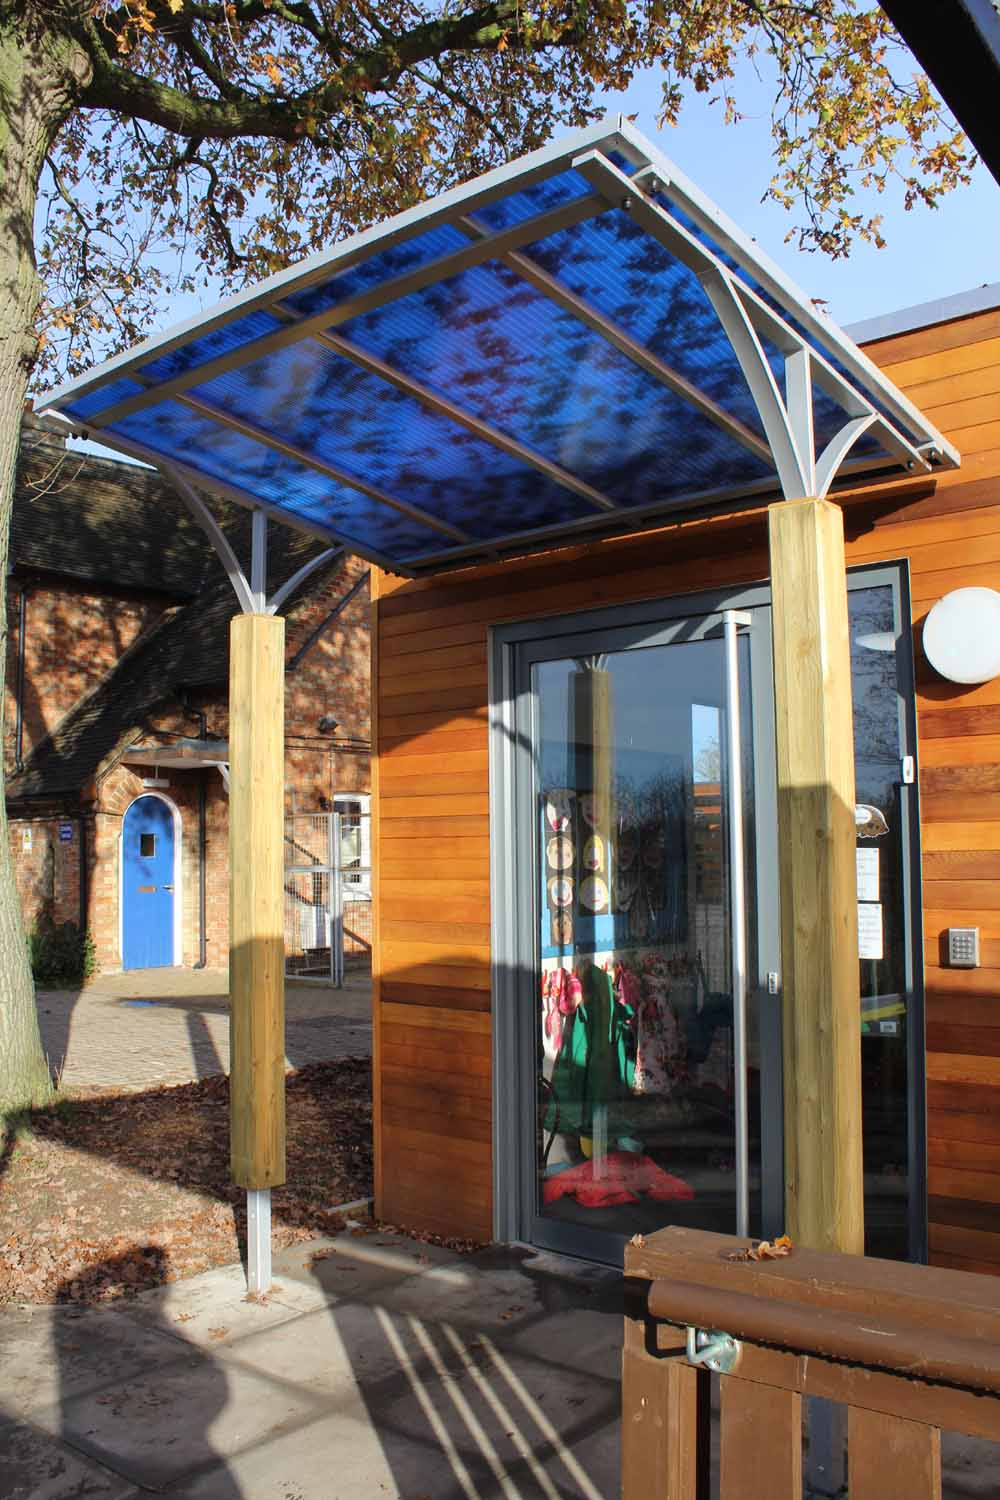 Entrance Canopies Product : Entrance canopies bespoke canopy manufacturers uk